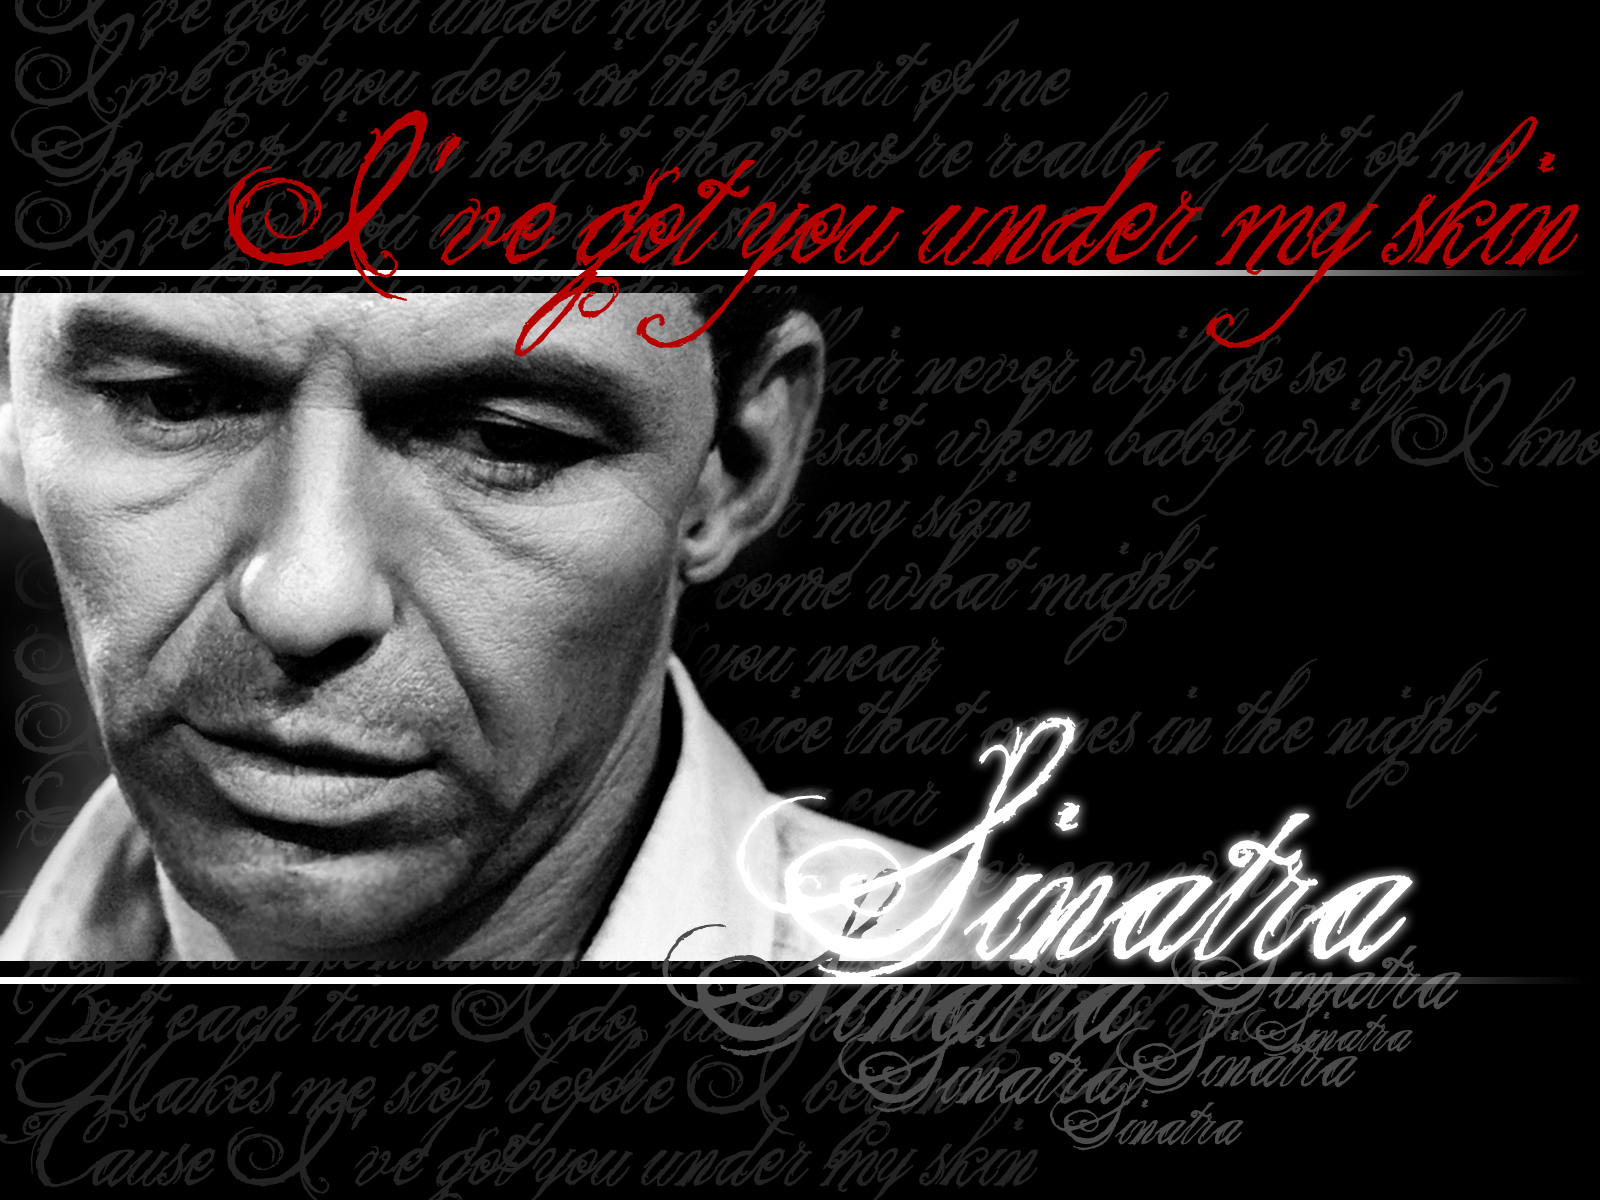 http://2.bp.blogspot.com/-GlwgdJCBkLw/TxKgRqCHSgI/AAAAAAAABEE/040rtadg3SE/s1600/sylvie_sinatrafrank_need_some_frank_sinatra_wallsare_there_any_out_desktop_1600x1200_wallpaper-190867.jpeg